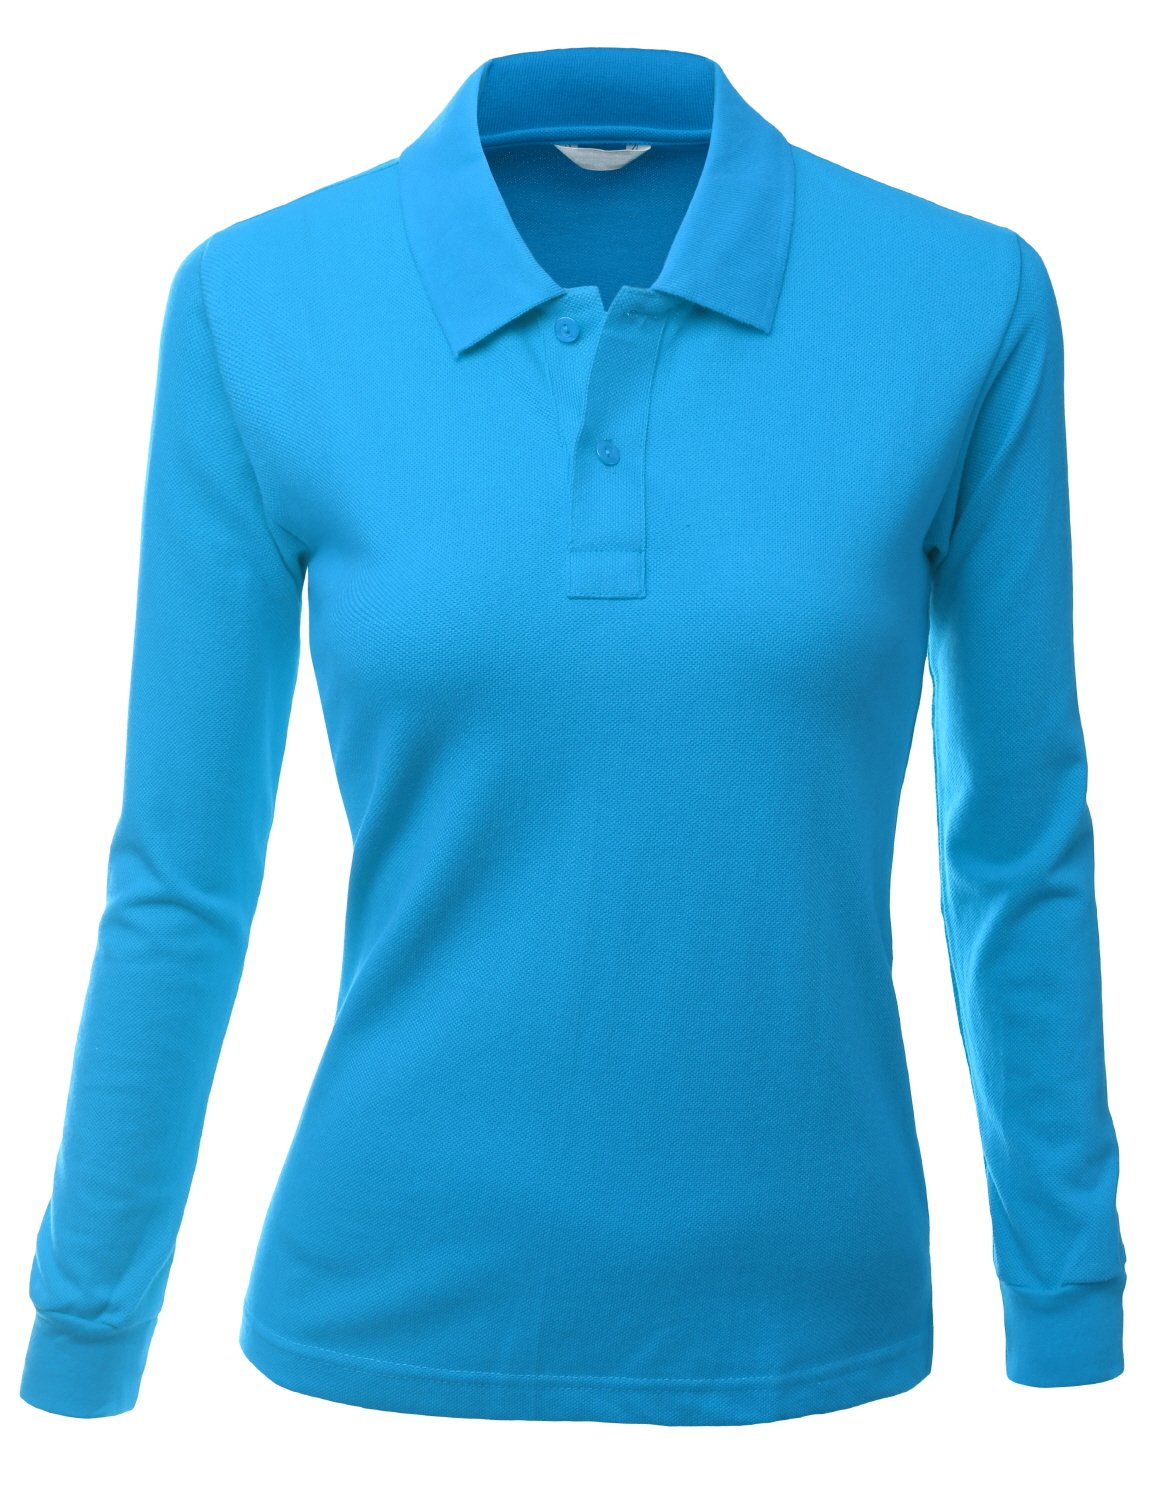 Luxurious Solid Long Sleeves PK Polo Shirt Blue Size S by Xpril